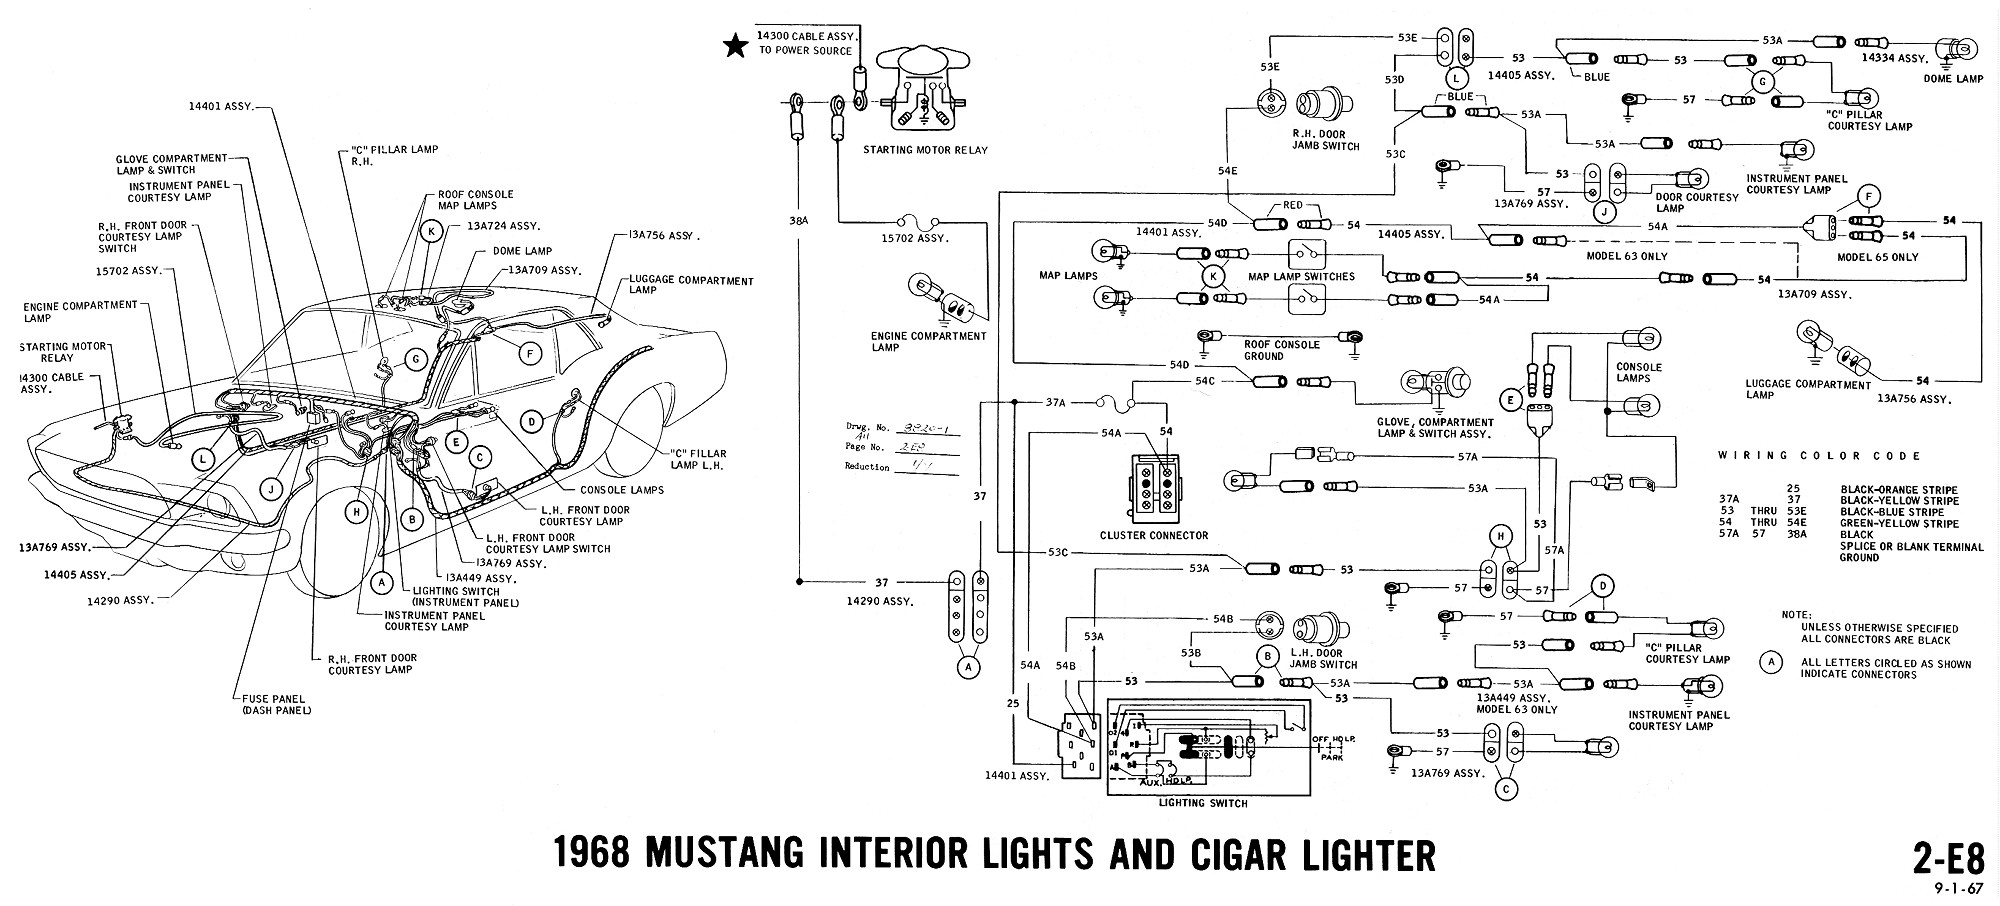 wire diagram 1968 cougar enthusiast wiring diagrams u2022 rh rasalibre co 1969 Mustang Wiring Diagram 73 Mustang Wiring Diagram